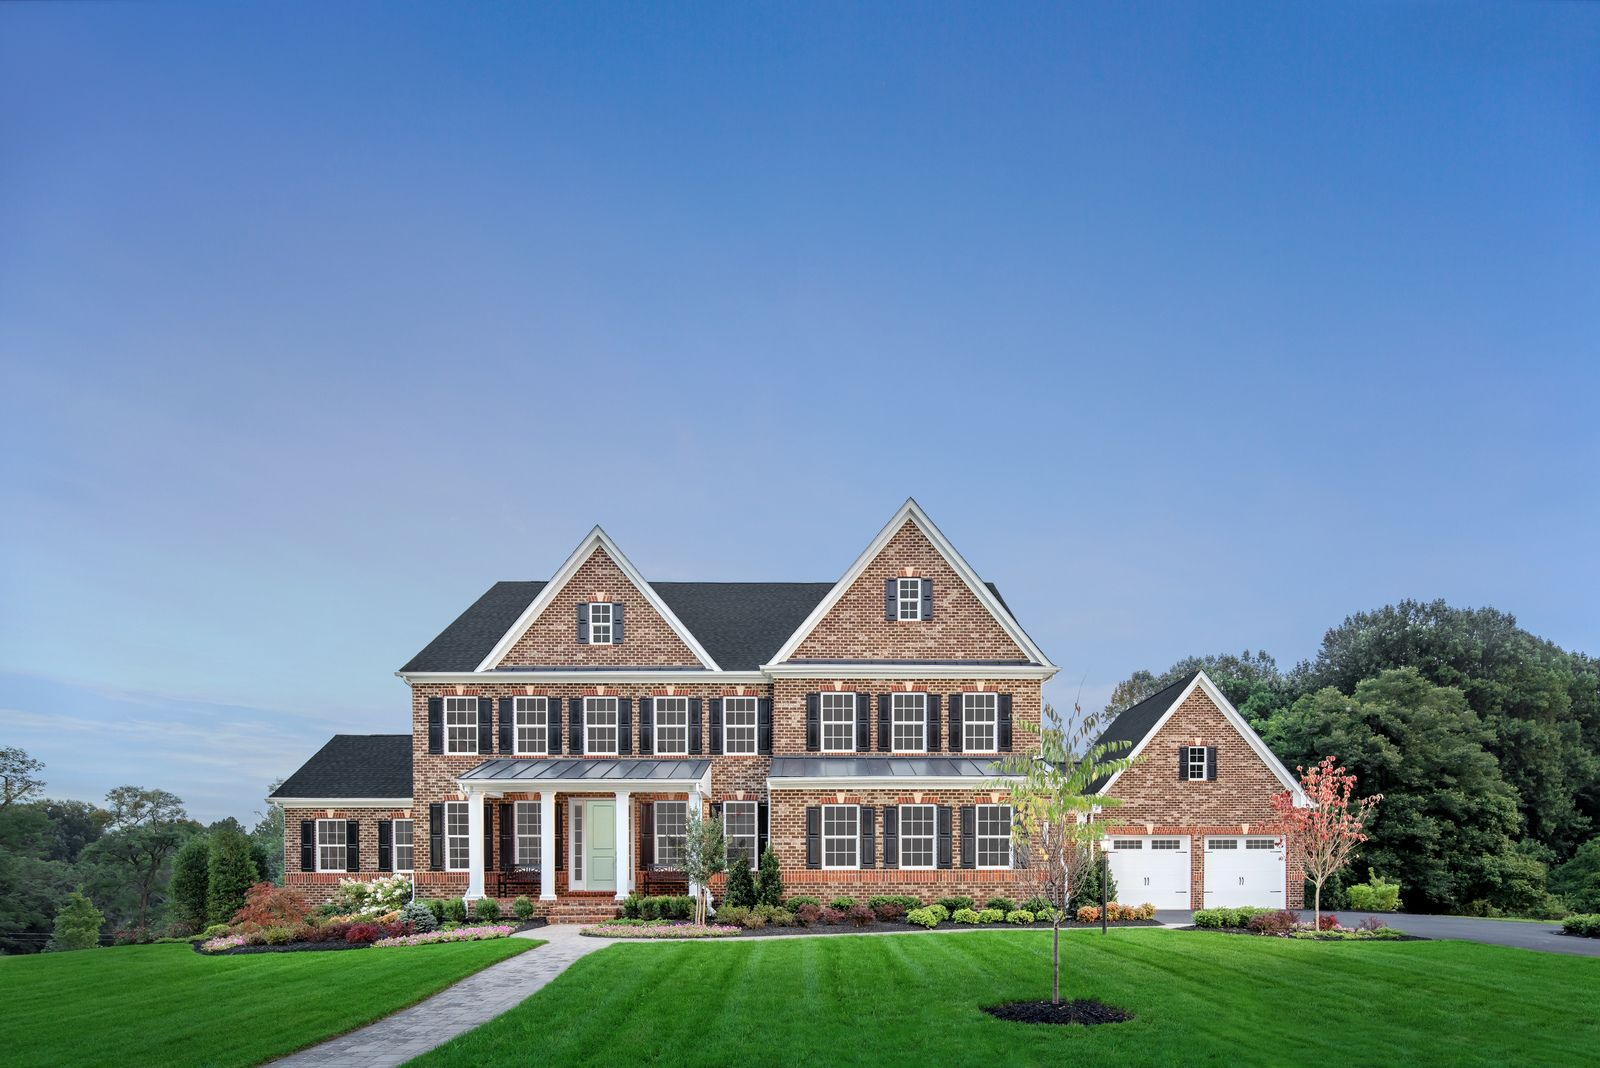 PREMIUM 1-ACRE+ USABLE HOMESITES WITH PUBLIC WATER AND SEWER